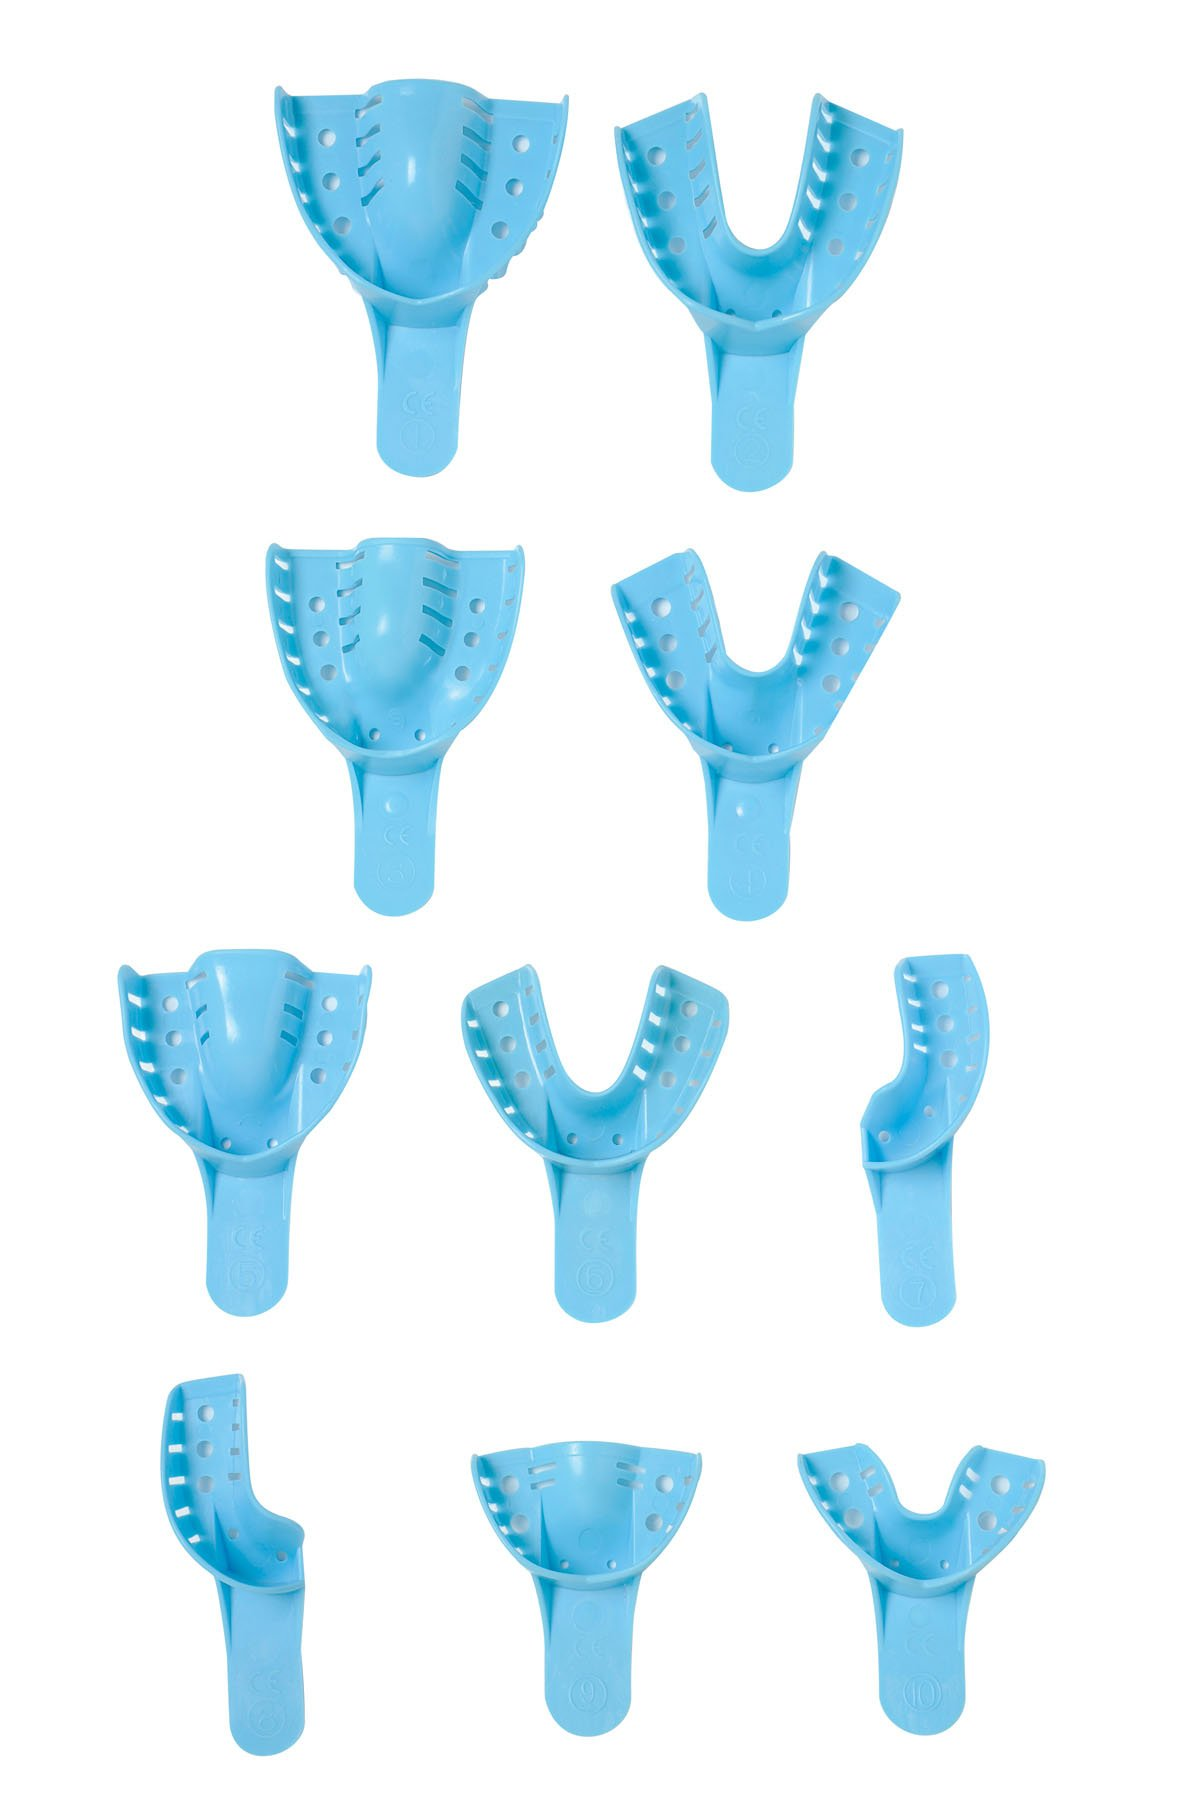 Primo Dental Products ITP10 Disp Impression Trays, Lower Anterior, 10 Perforated (Pack of 12)